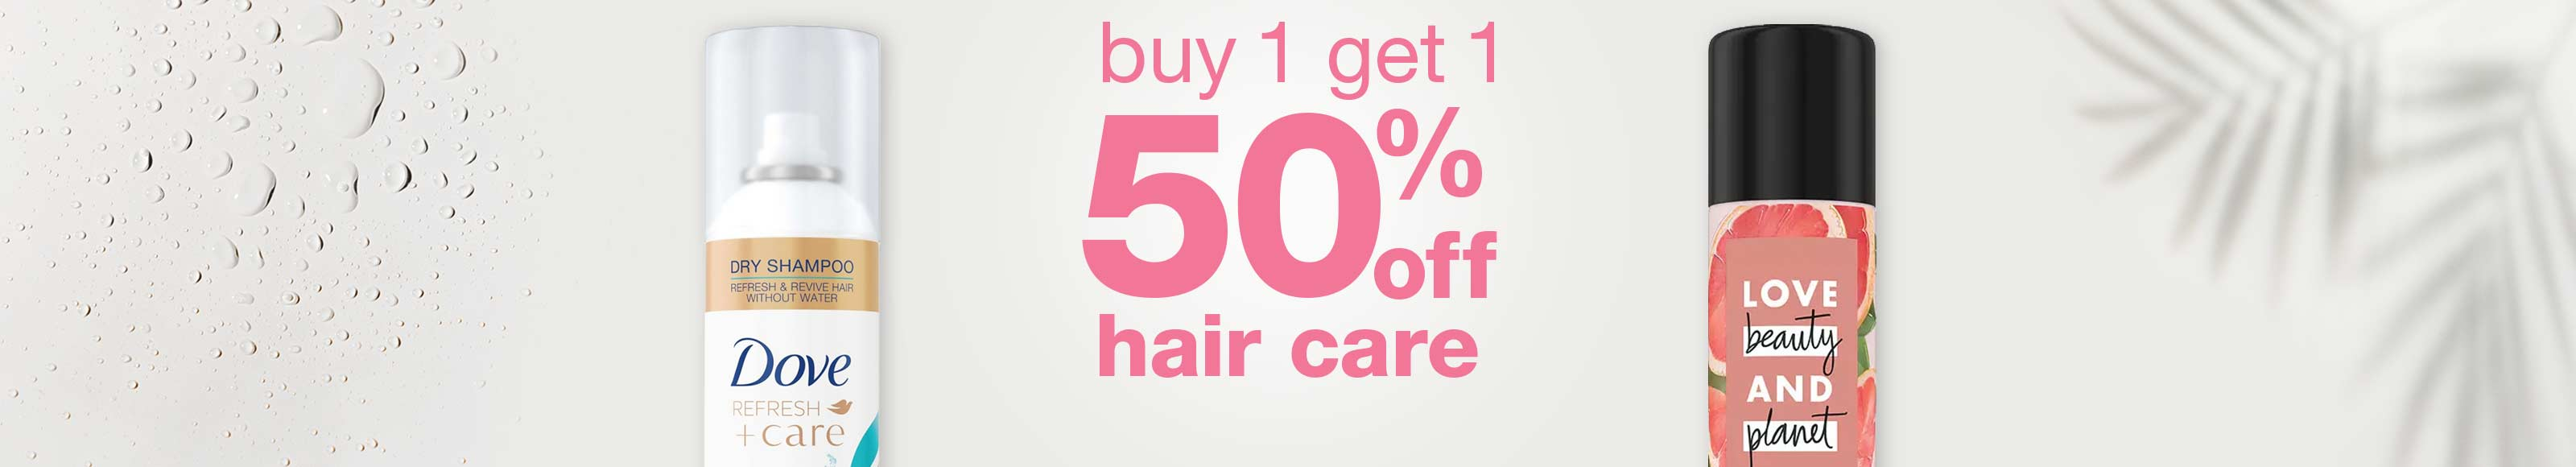 buy 1 get 1 50% off hair care.